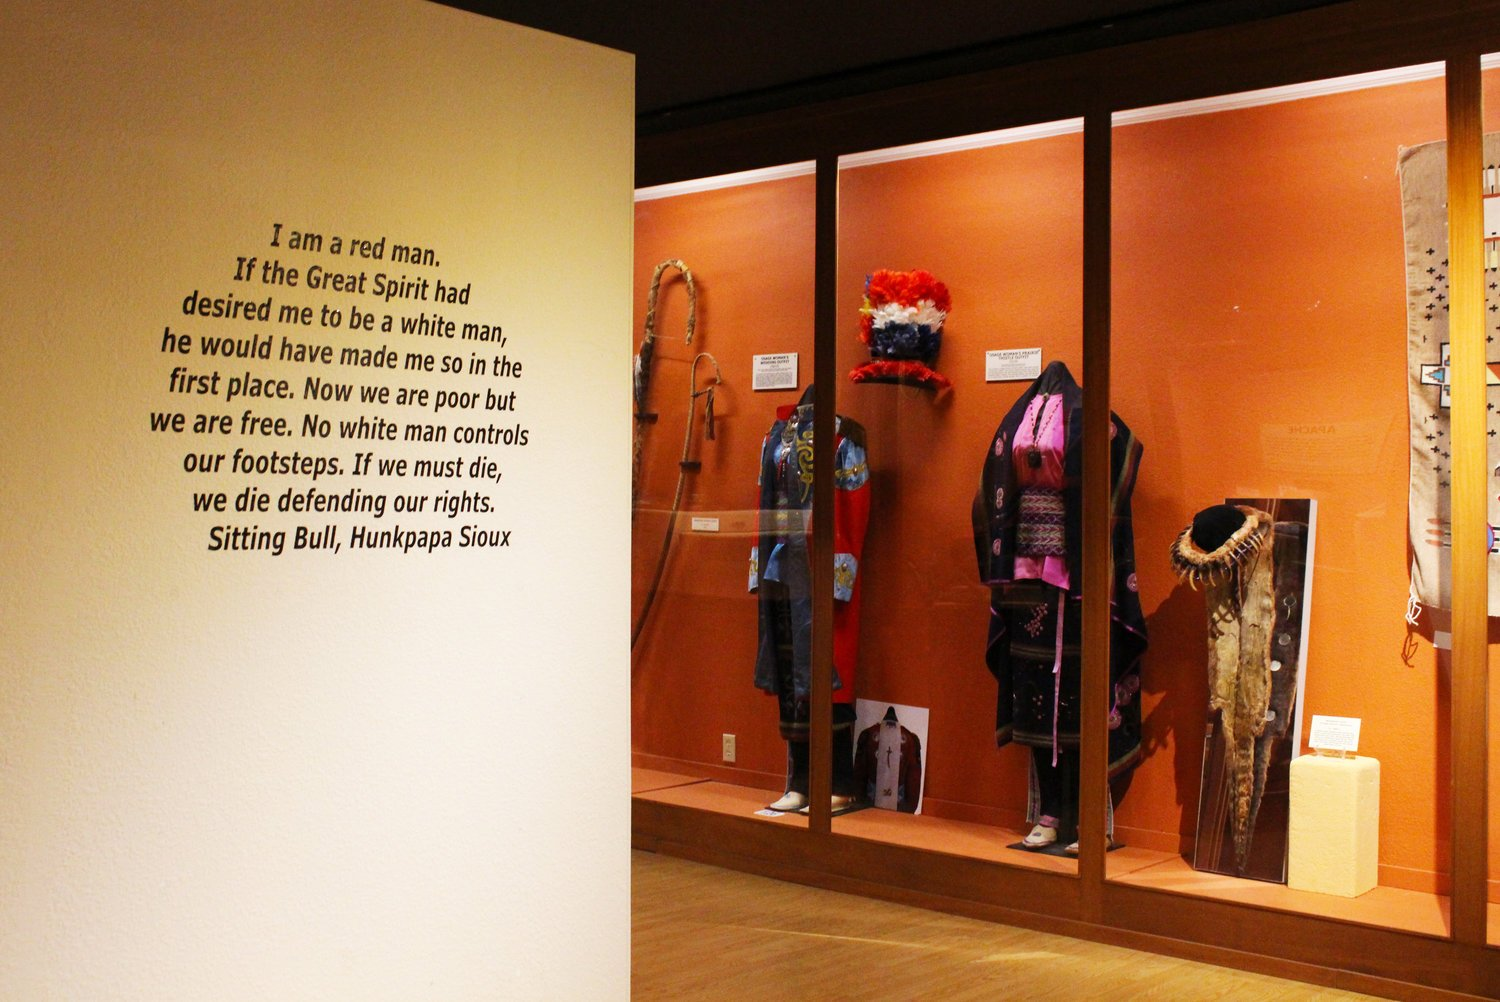 A wall located inside of the museum with a quote from Sitting Bull.